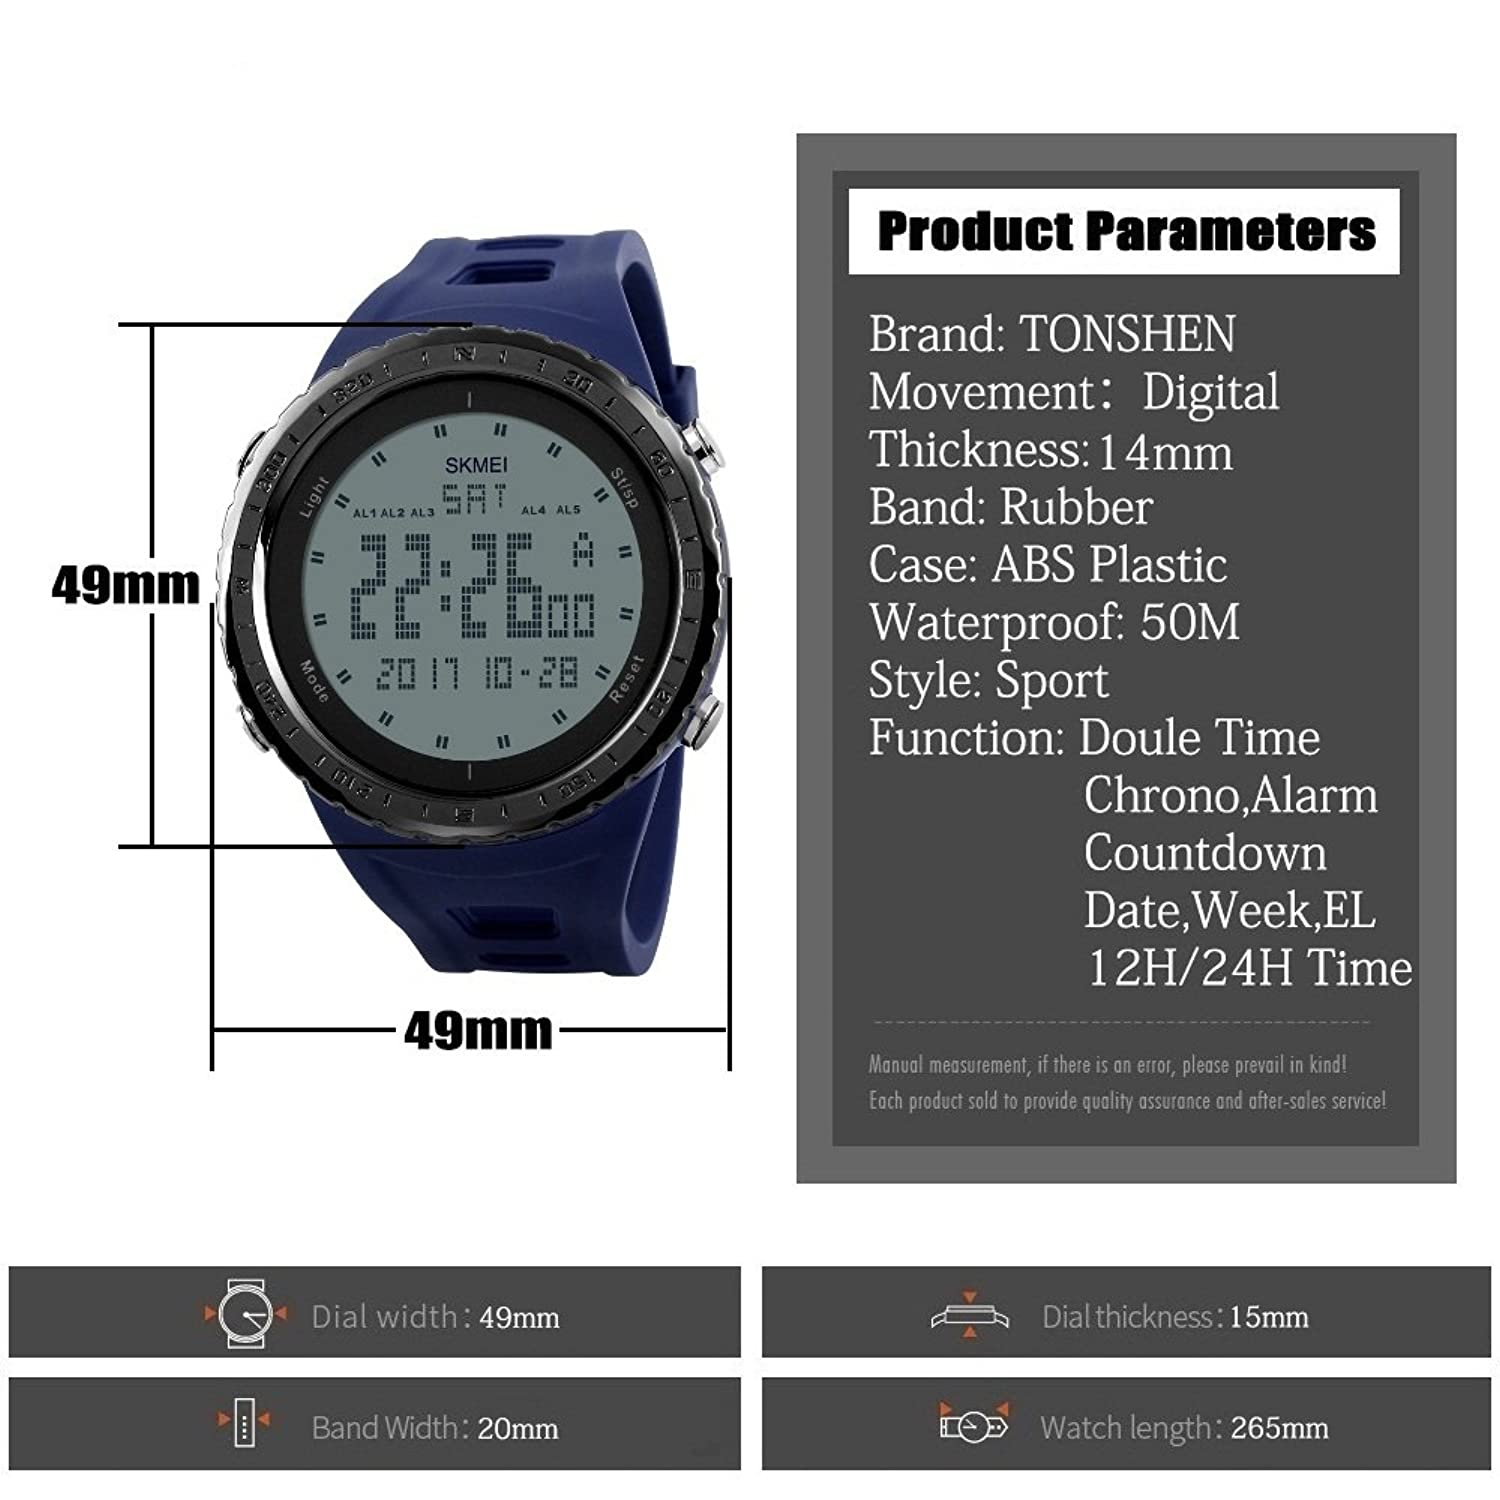 Amazon.com: TONSHEN Mens Multifunction Digital 50M Waterproof Watch Outdoor Sport Watch Military 12H/24H Time LED Display 5 Alarm Rubber Strap Watch - Blue: ...